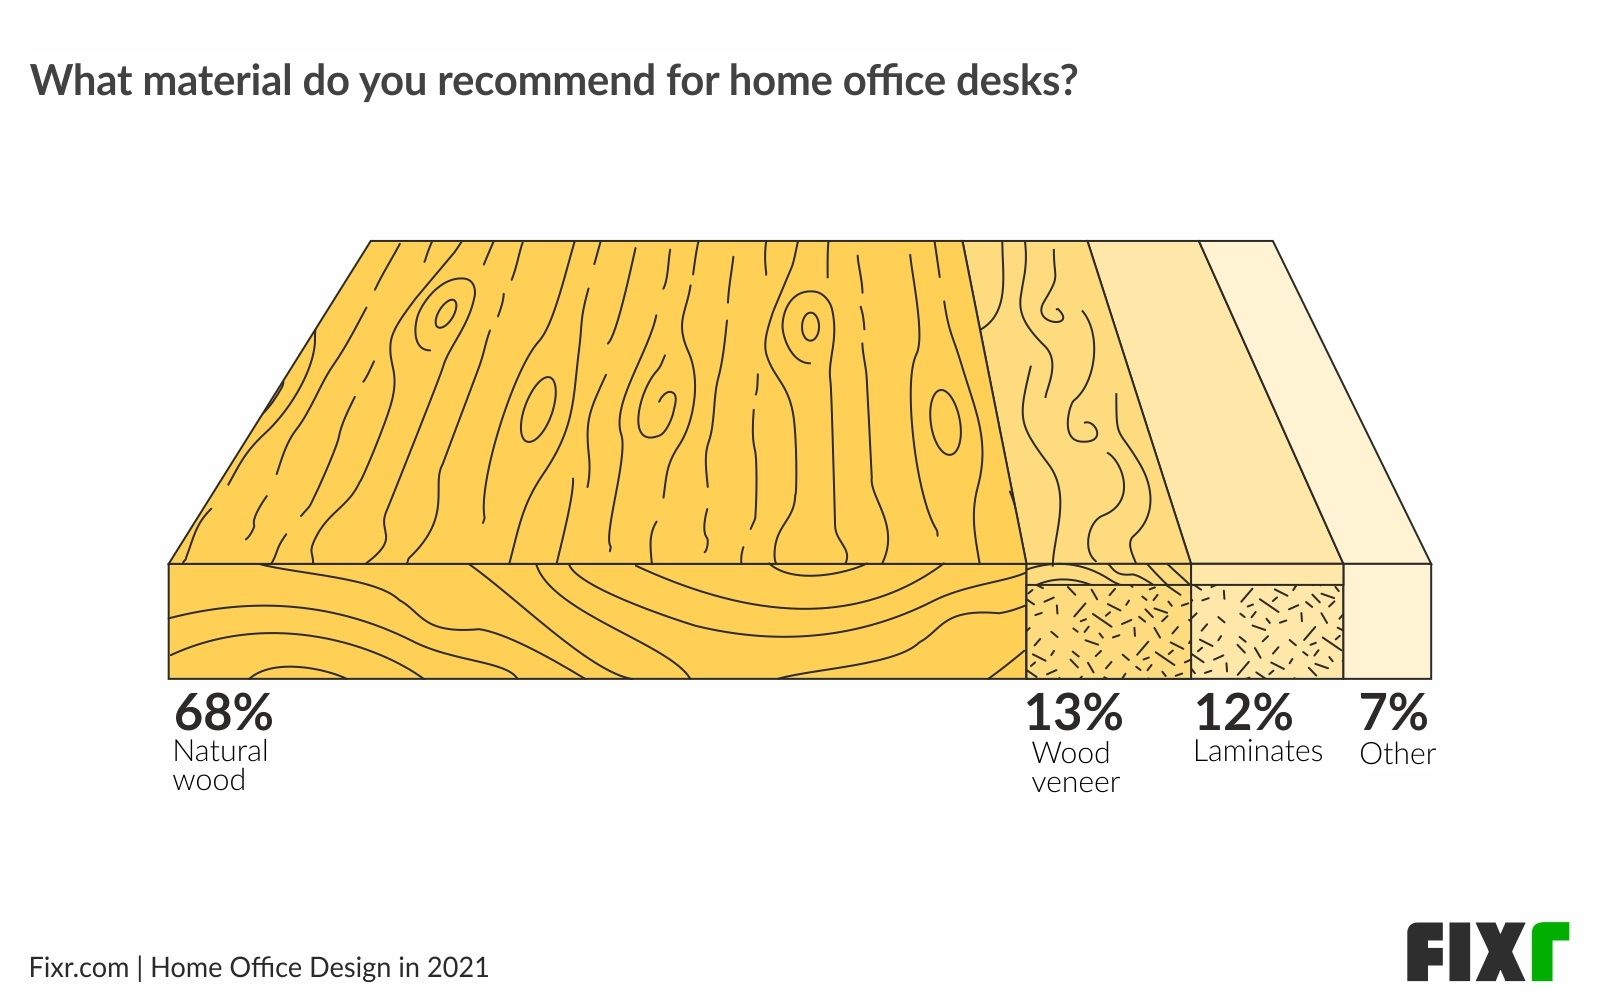 Home Office Design in 2021〡Home Office Desk Material